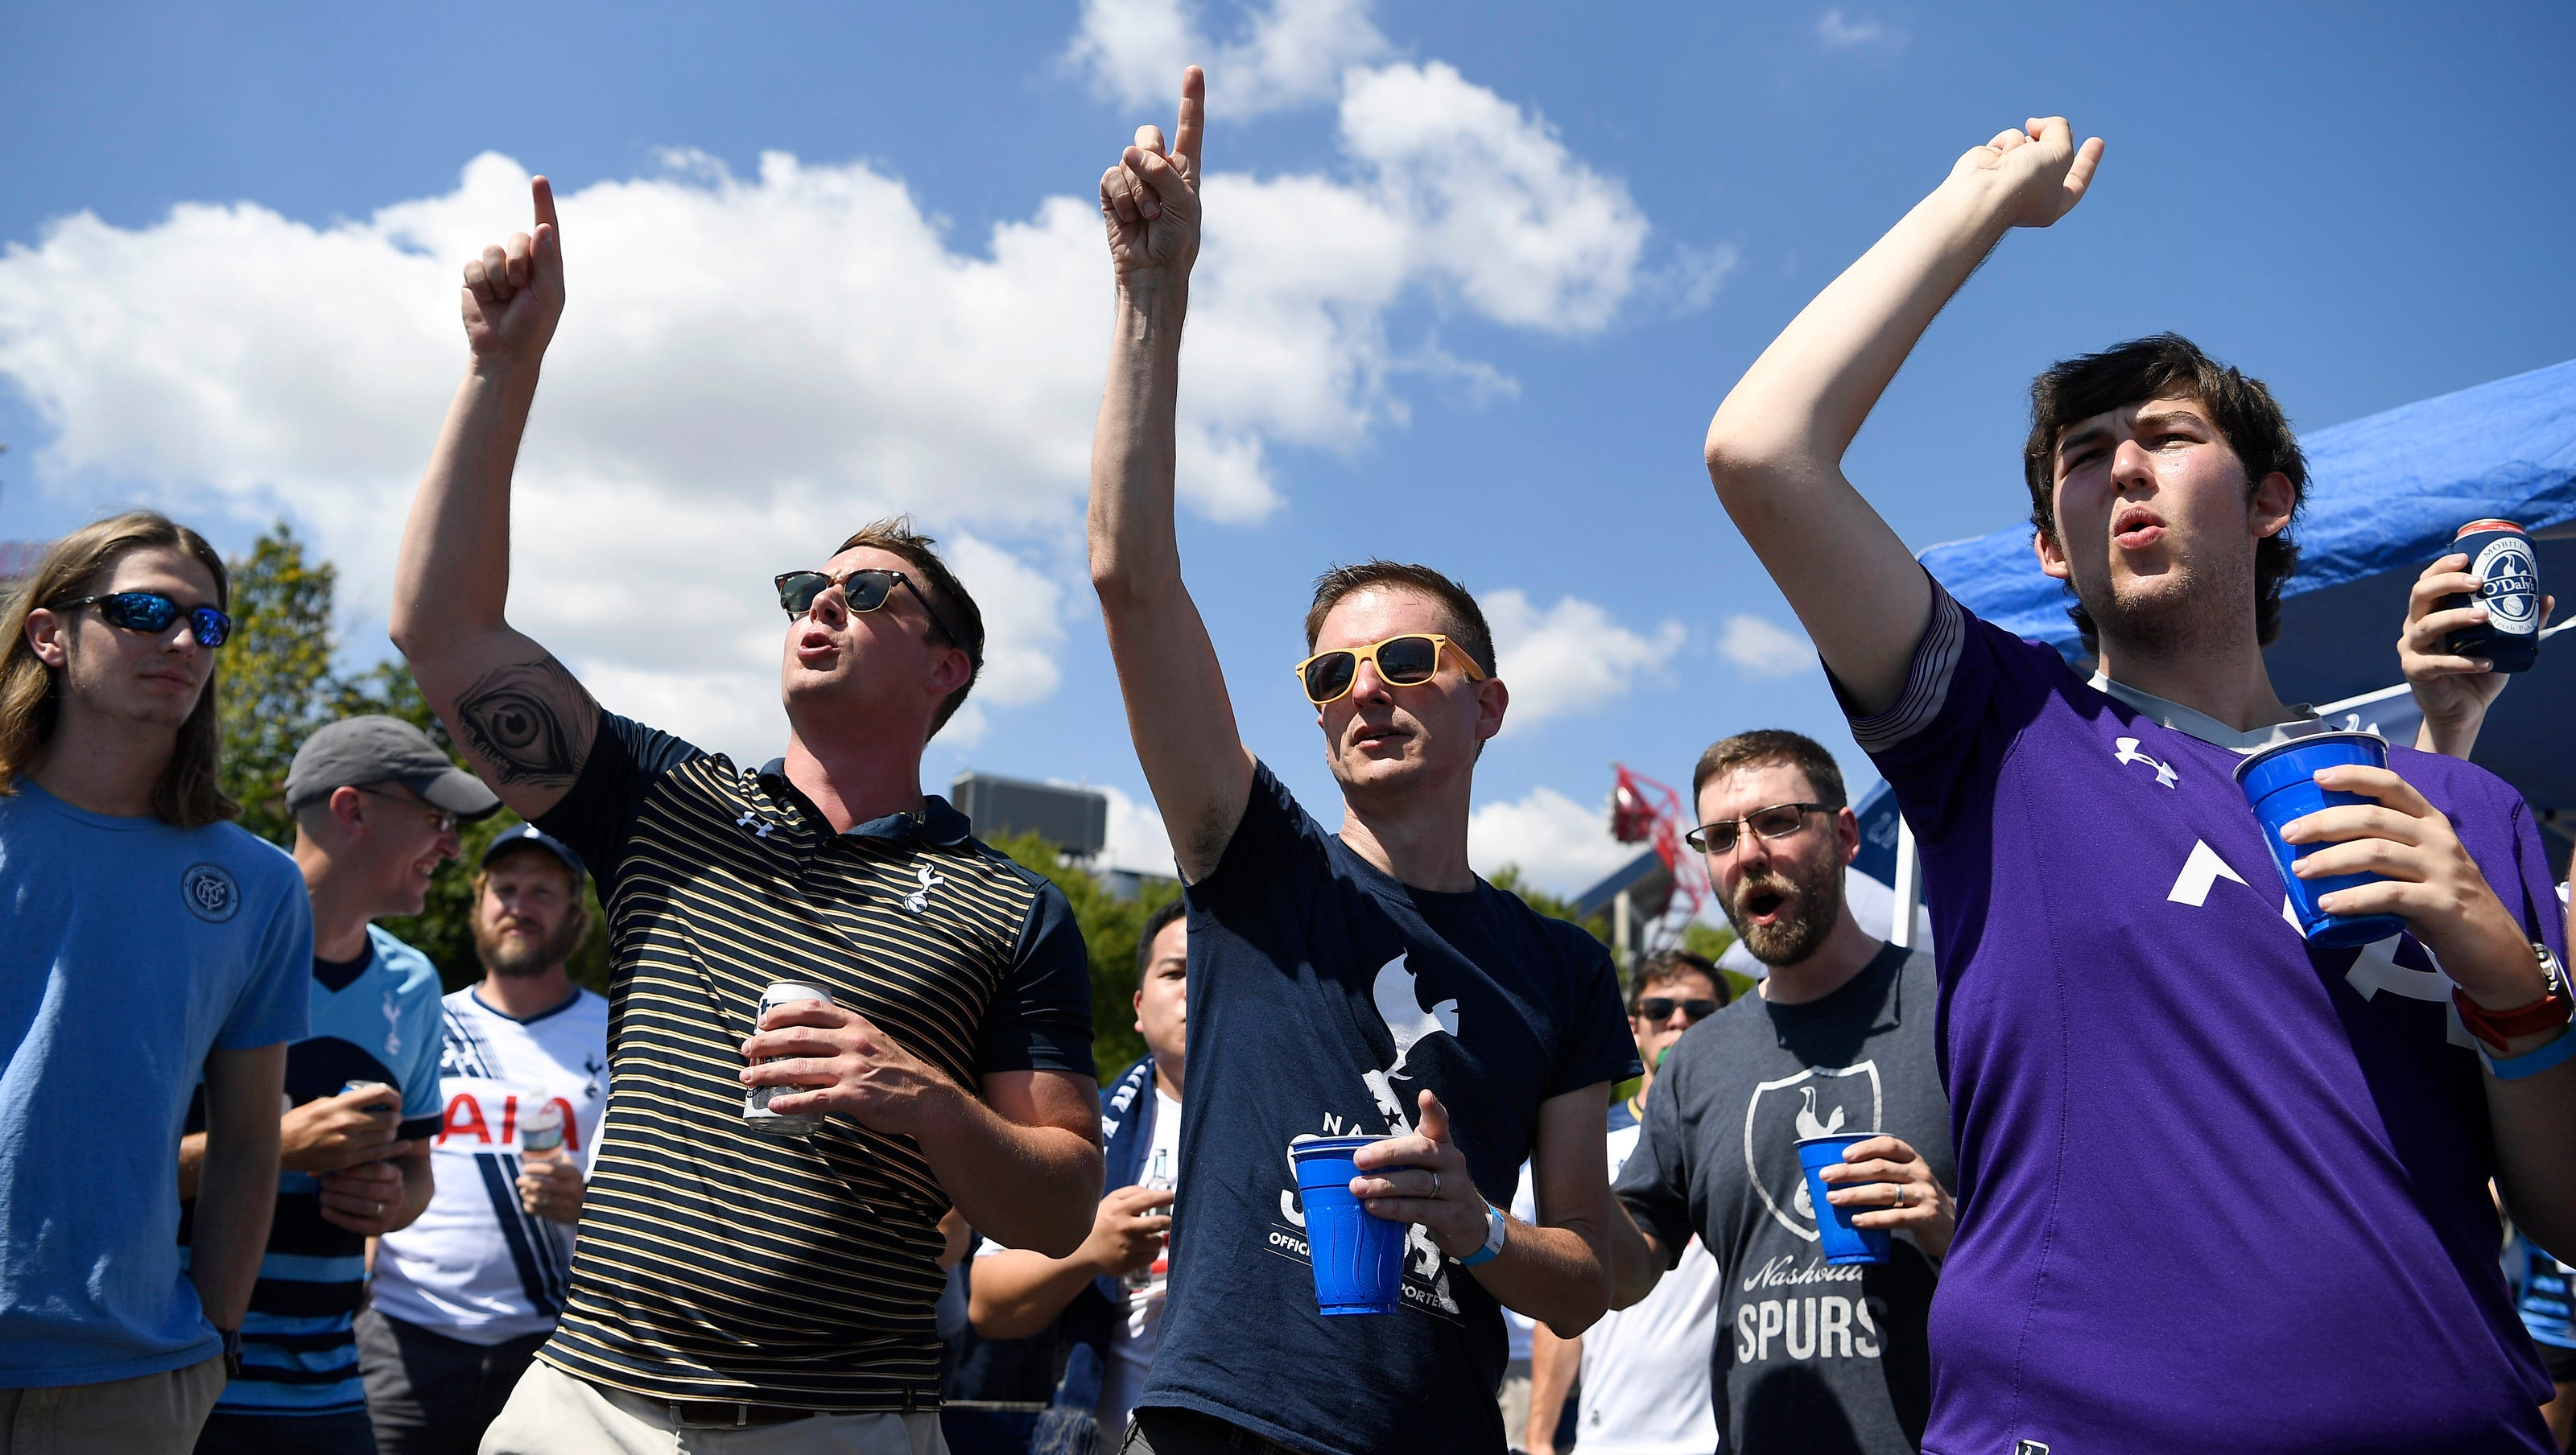 Tottenham, Manchester City fans create party atmosphere in downtown  Nashville